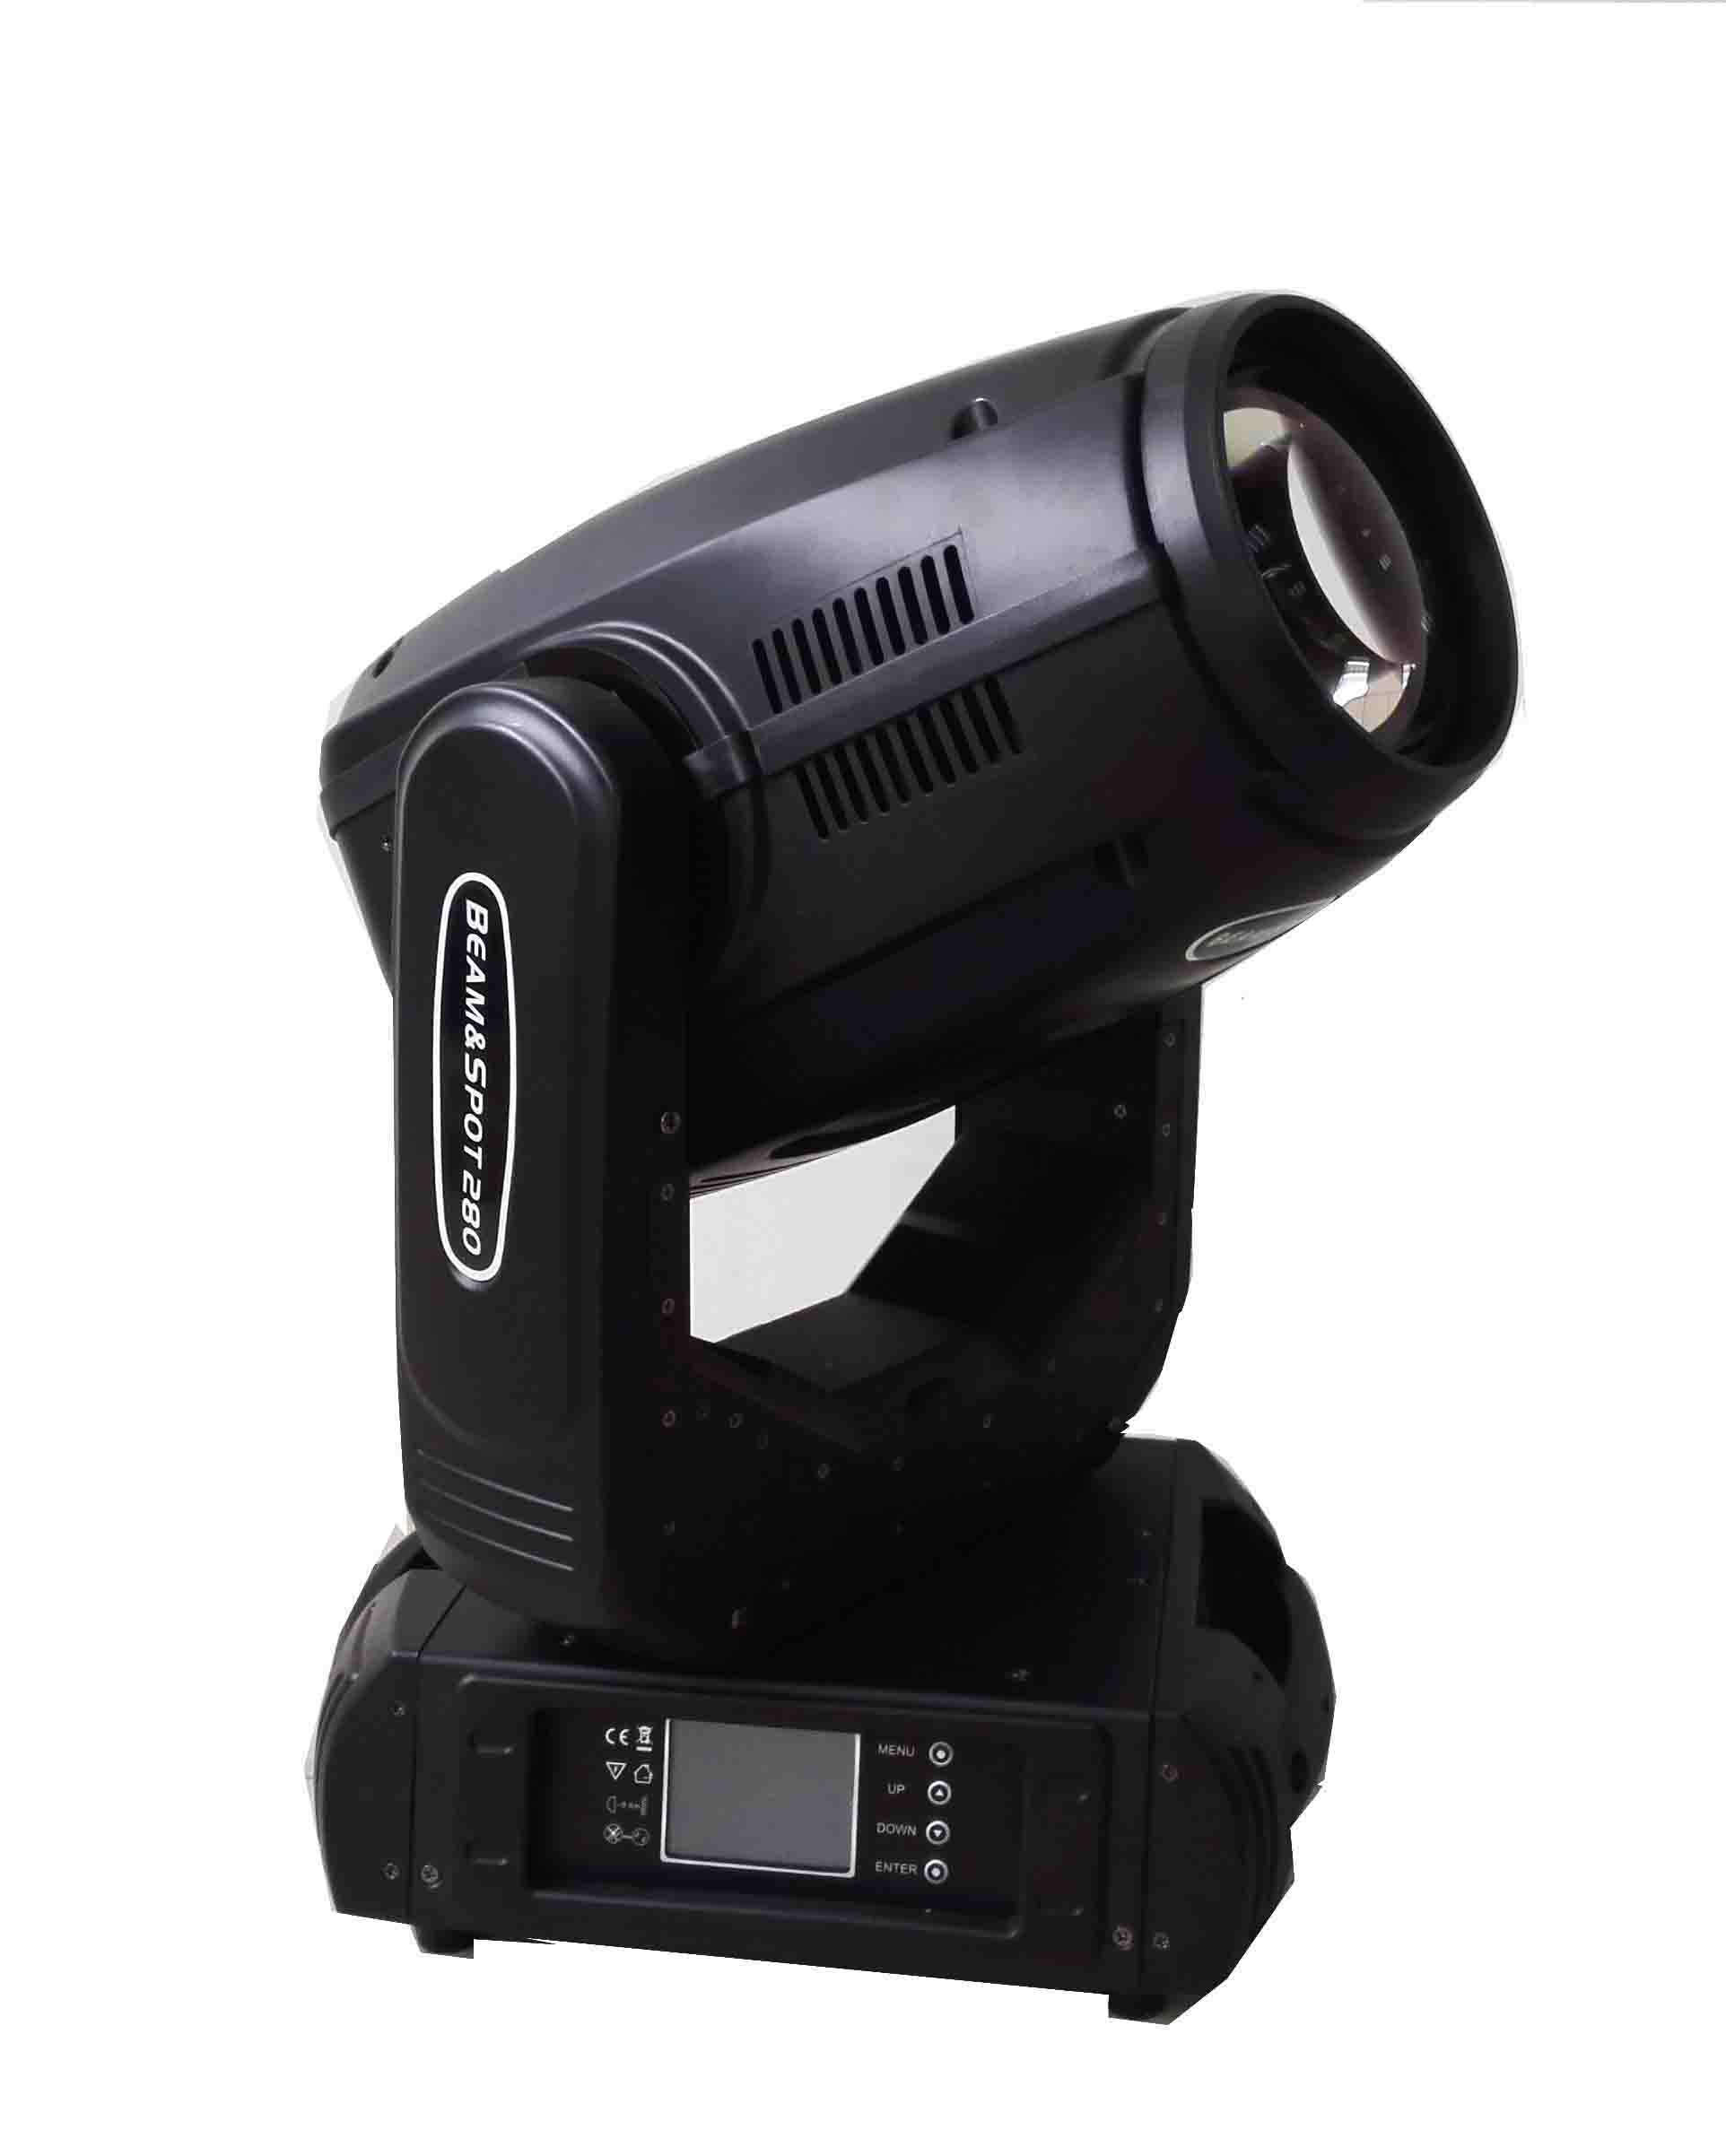 Robe <strong>pointe</strong> 280w sharpy 10R 280 beam spot wash 3 in 1 moving head light